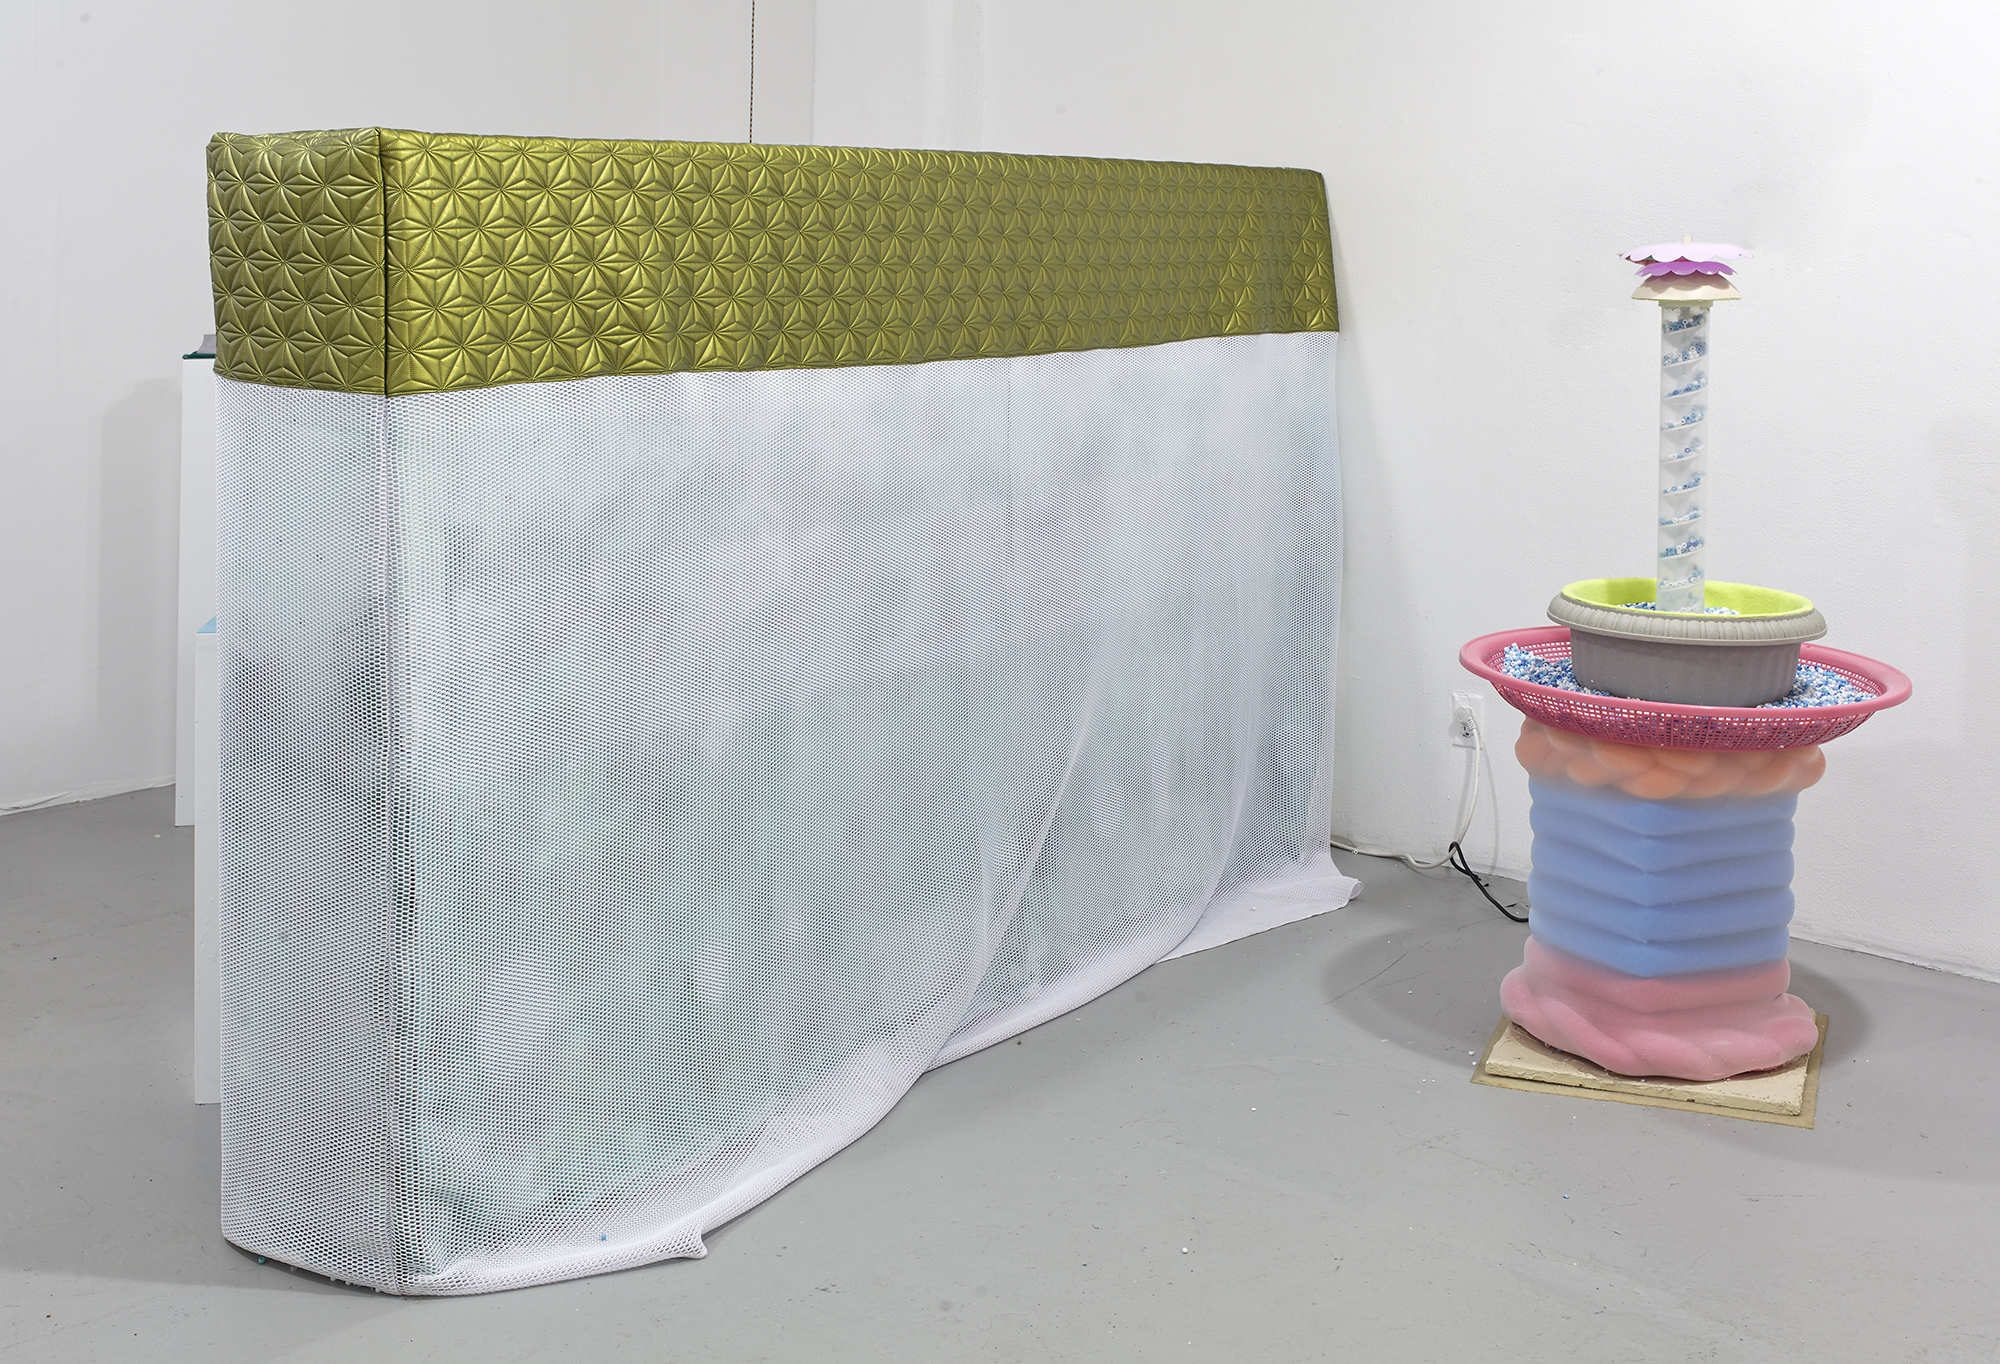 Fountain of Your Youth  with  Hedge  (2017, spacer mesh, toaster oven cover material, canvas, paint, lamps) as installed in  Tenderheaded  solo exhibition at Rush Gallery, 2017. photo: Martin Parsekian